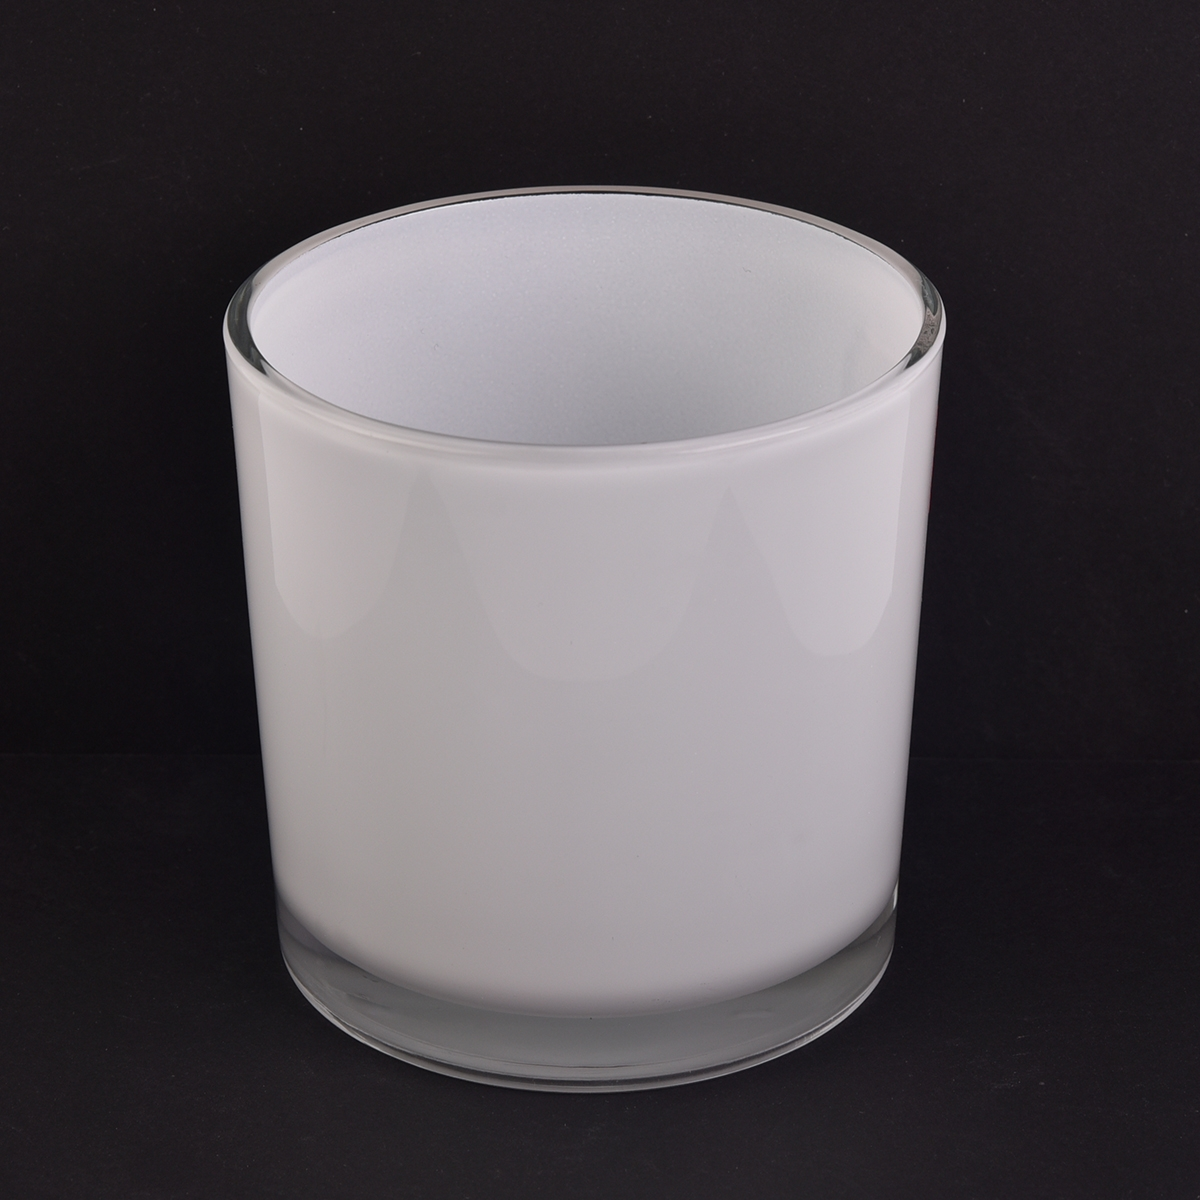 Hot Sales Cylinder Glass Candle Jars For 14 Oz Wax On